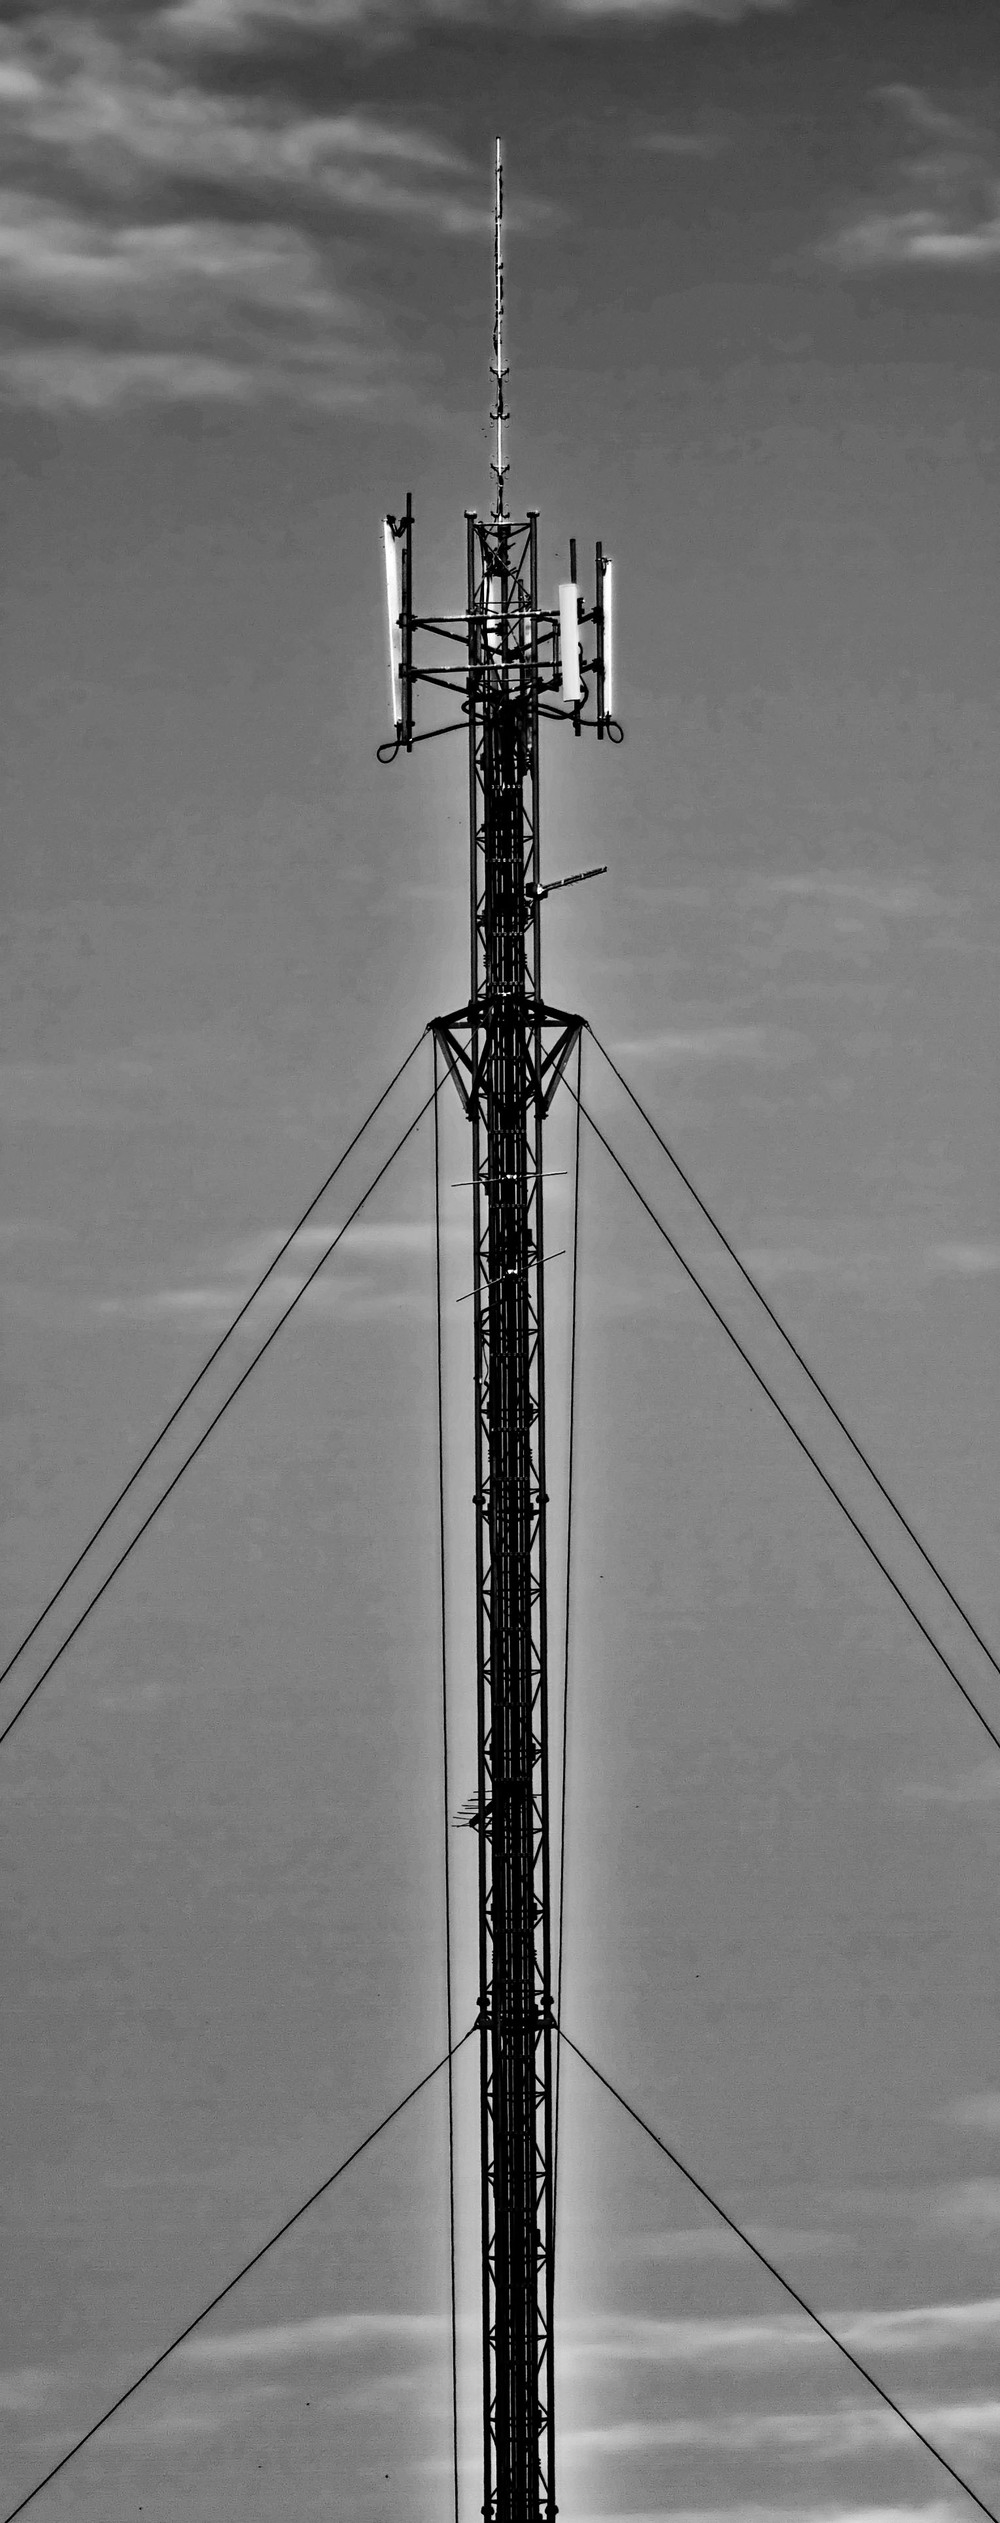 Theme: Random <br>Title: Cell Tower